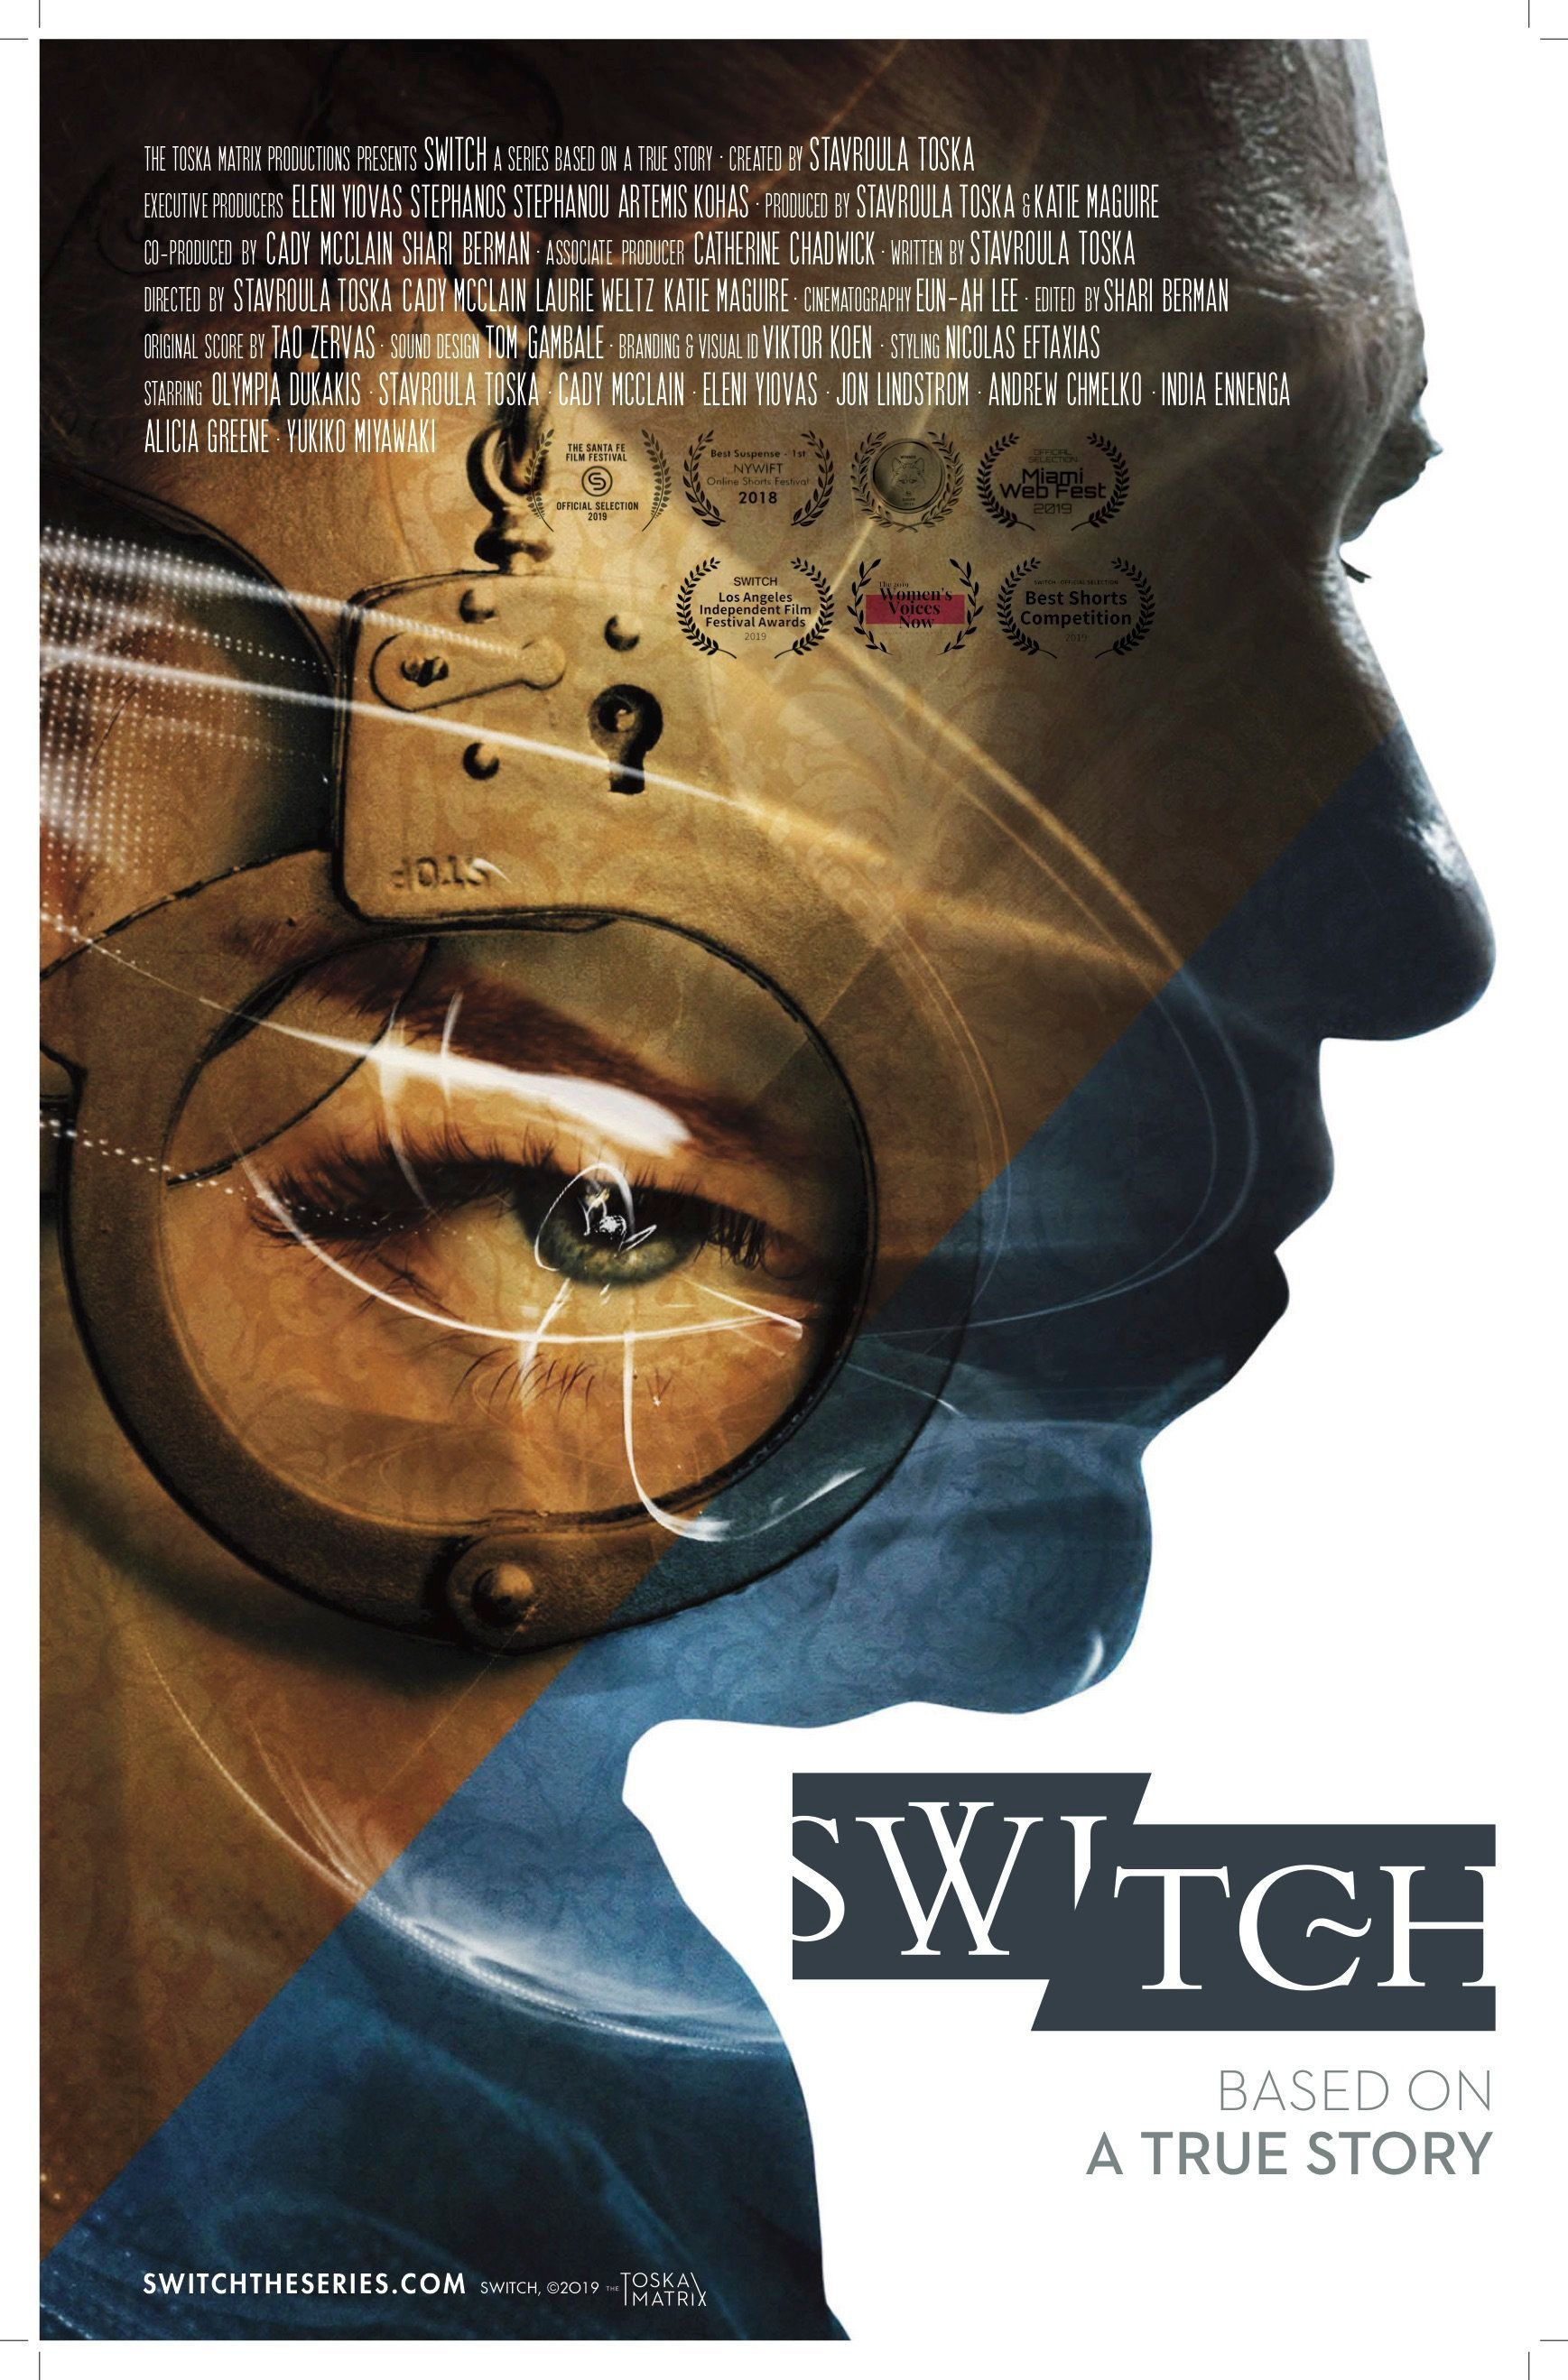 A poster for SWITCH.